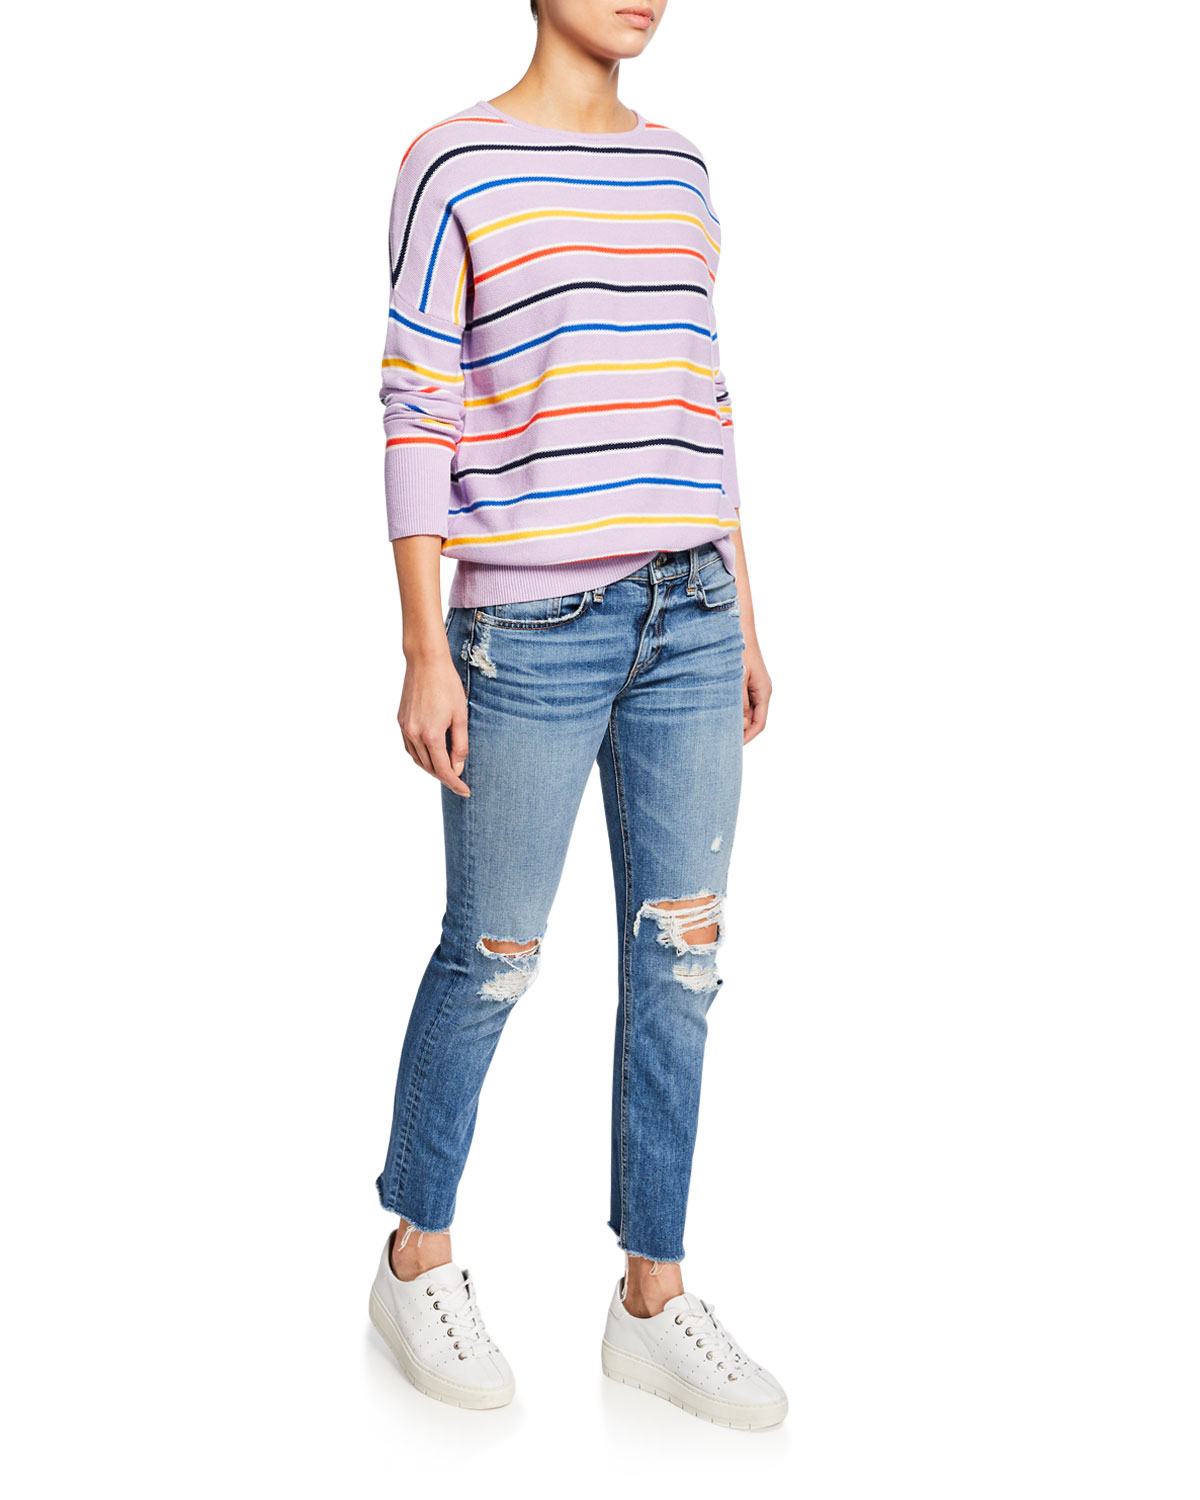 Dre Low Rise Ankle Slim Boyfriend Jeans With Ripped Knees by Rag & Bone